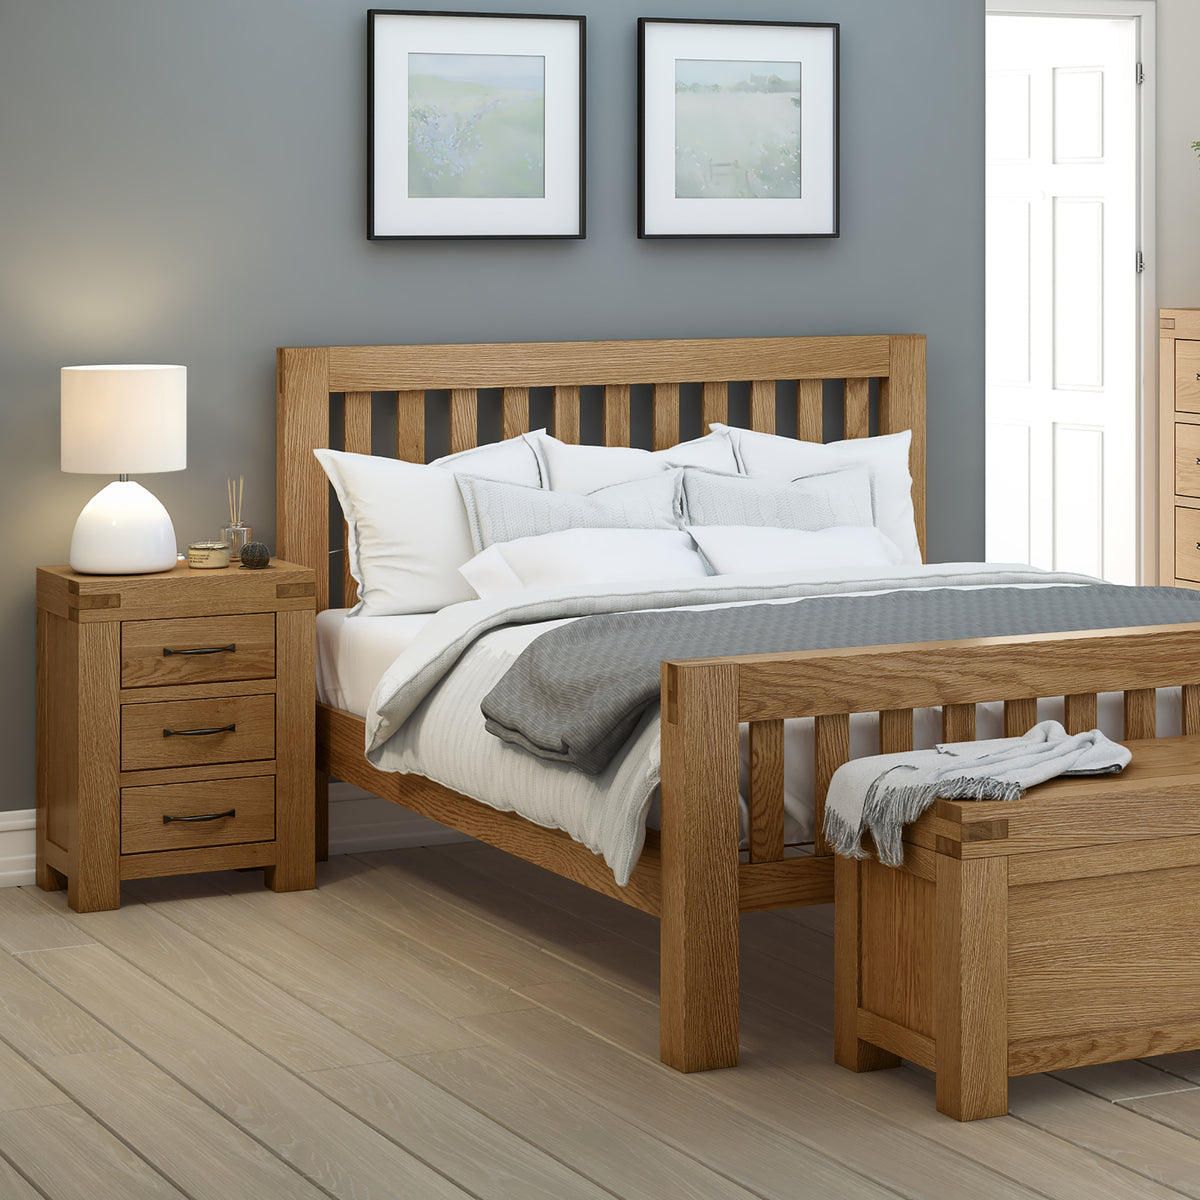 The Abbey Grande Wooden Oak Bed Frame Double or King Size - Lifestyle